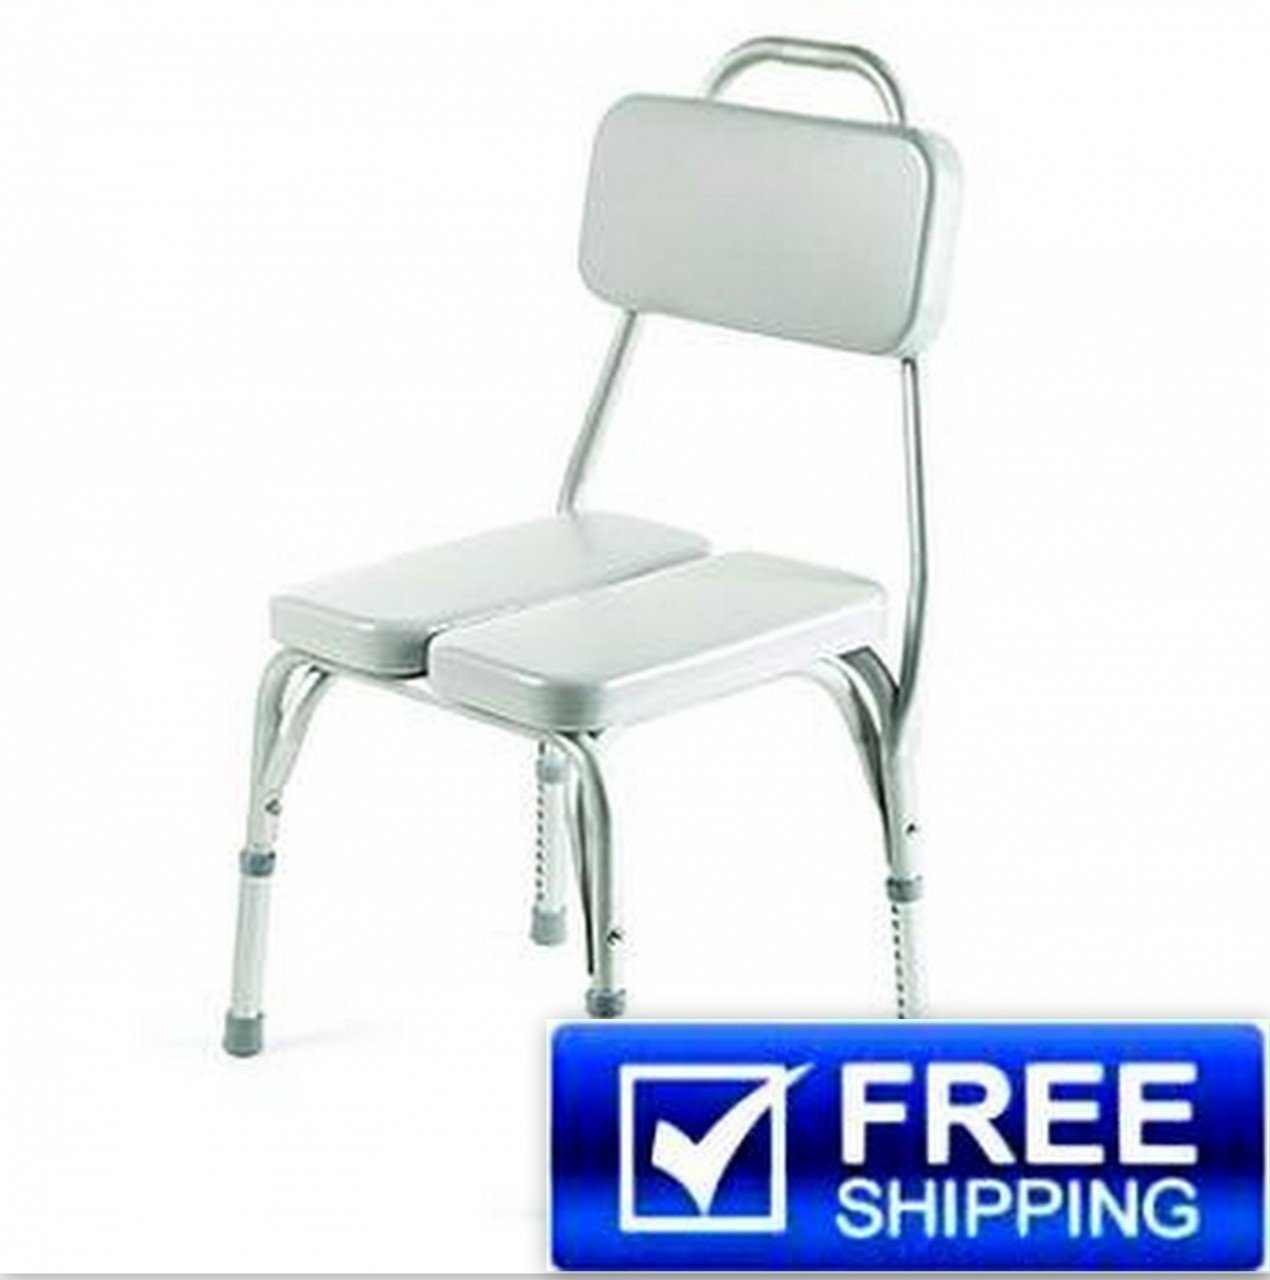 Amazon.com: Invacare Vinyl Padded Shower Chair: Health & Personal Care